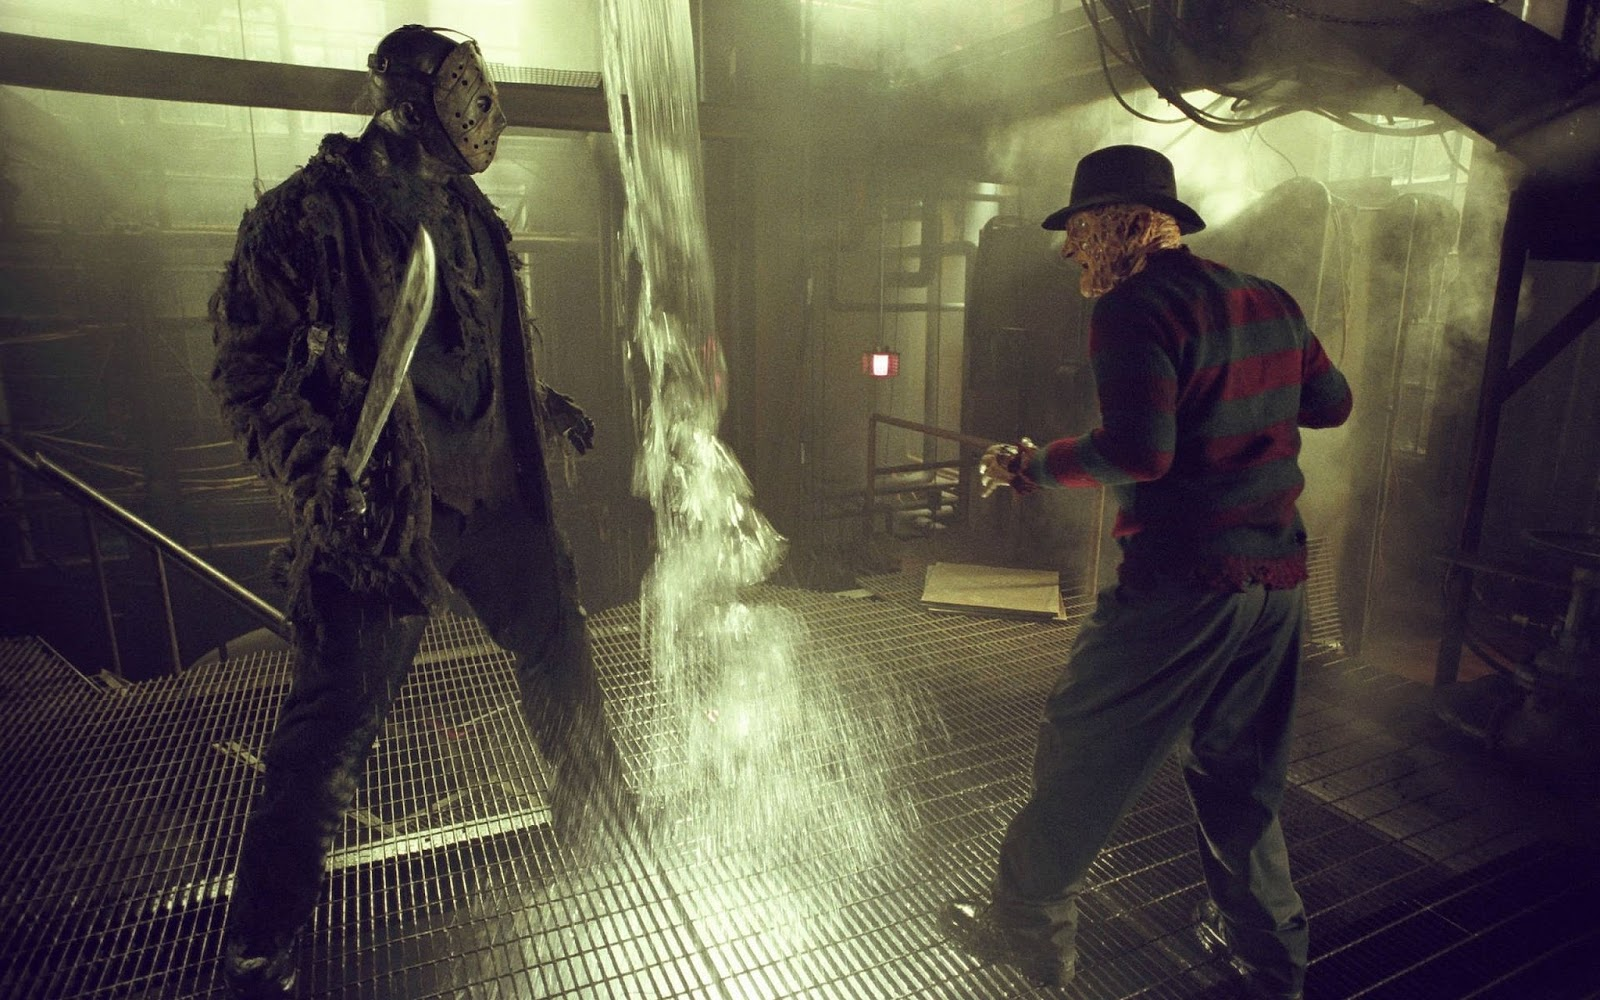 Freddy vs jason nude scenes photos 21